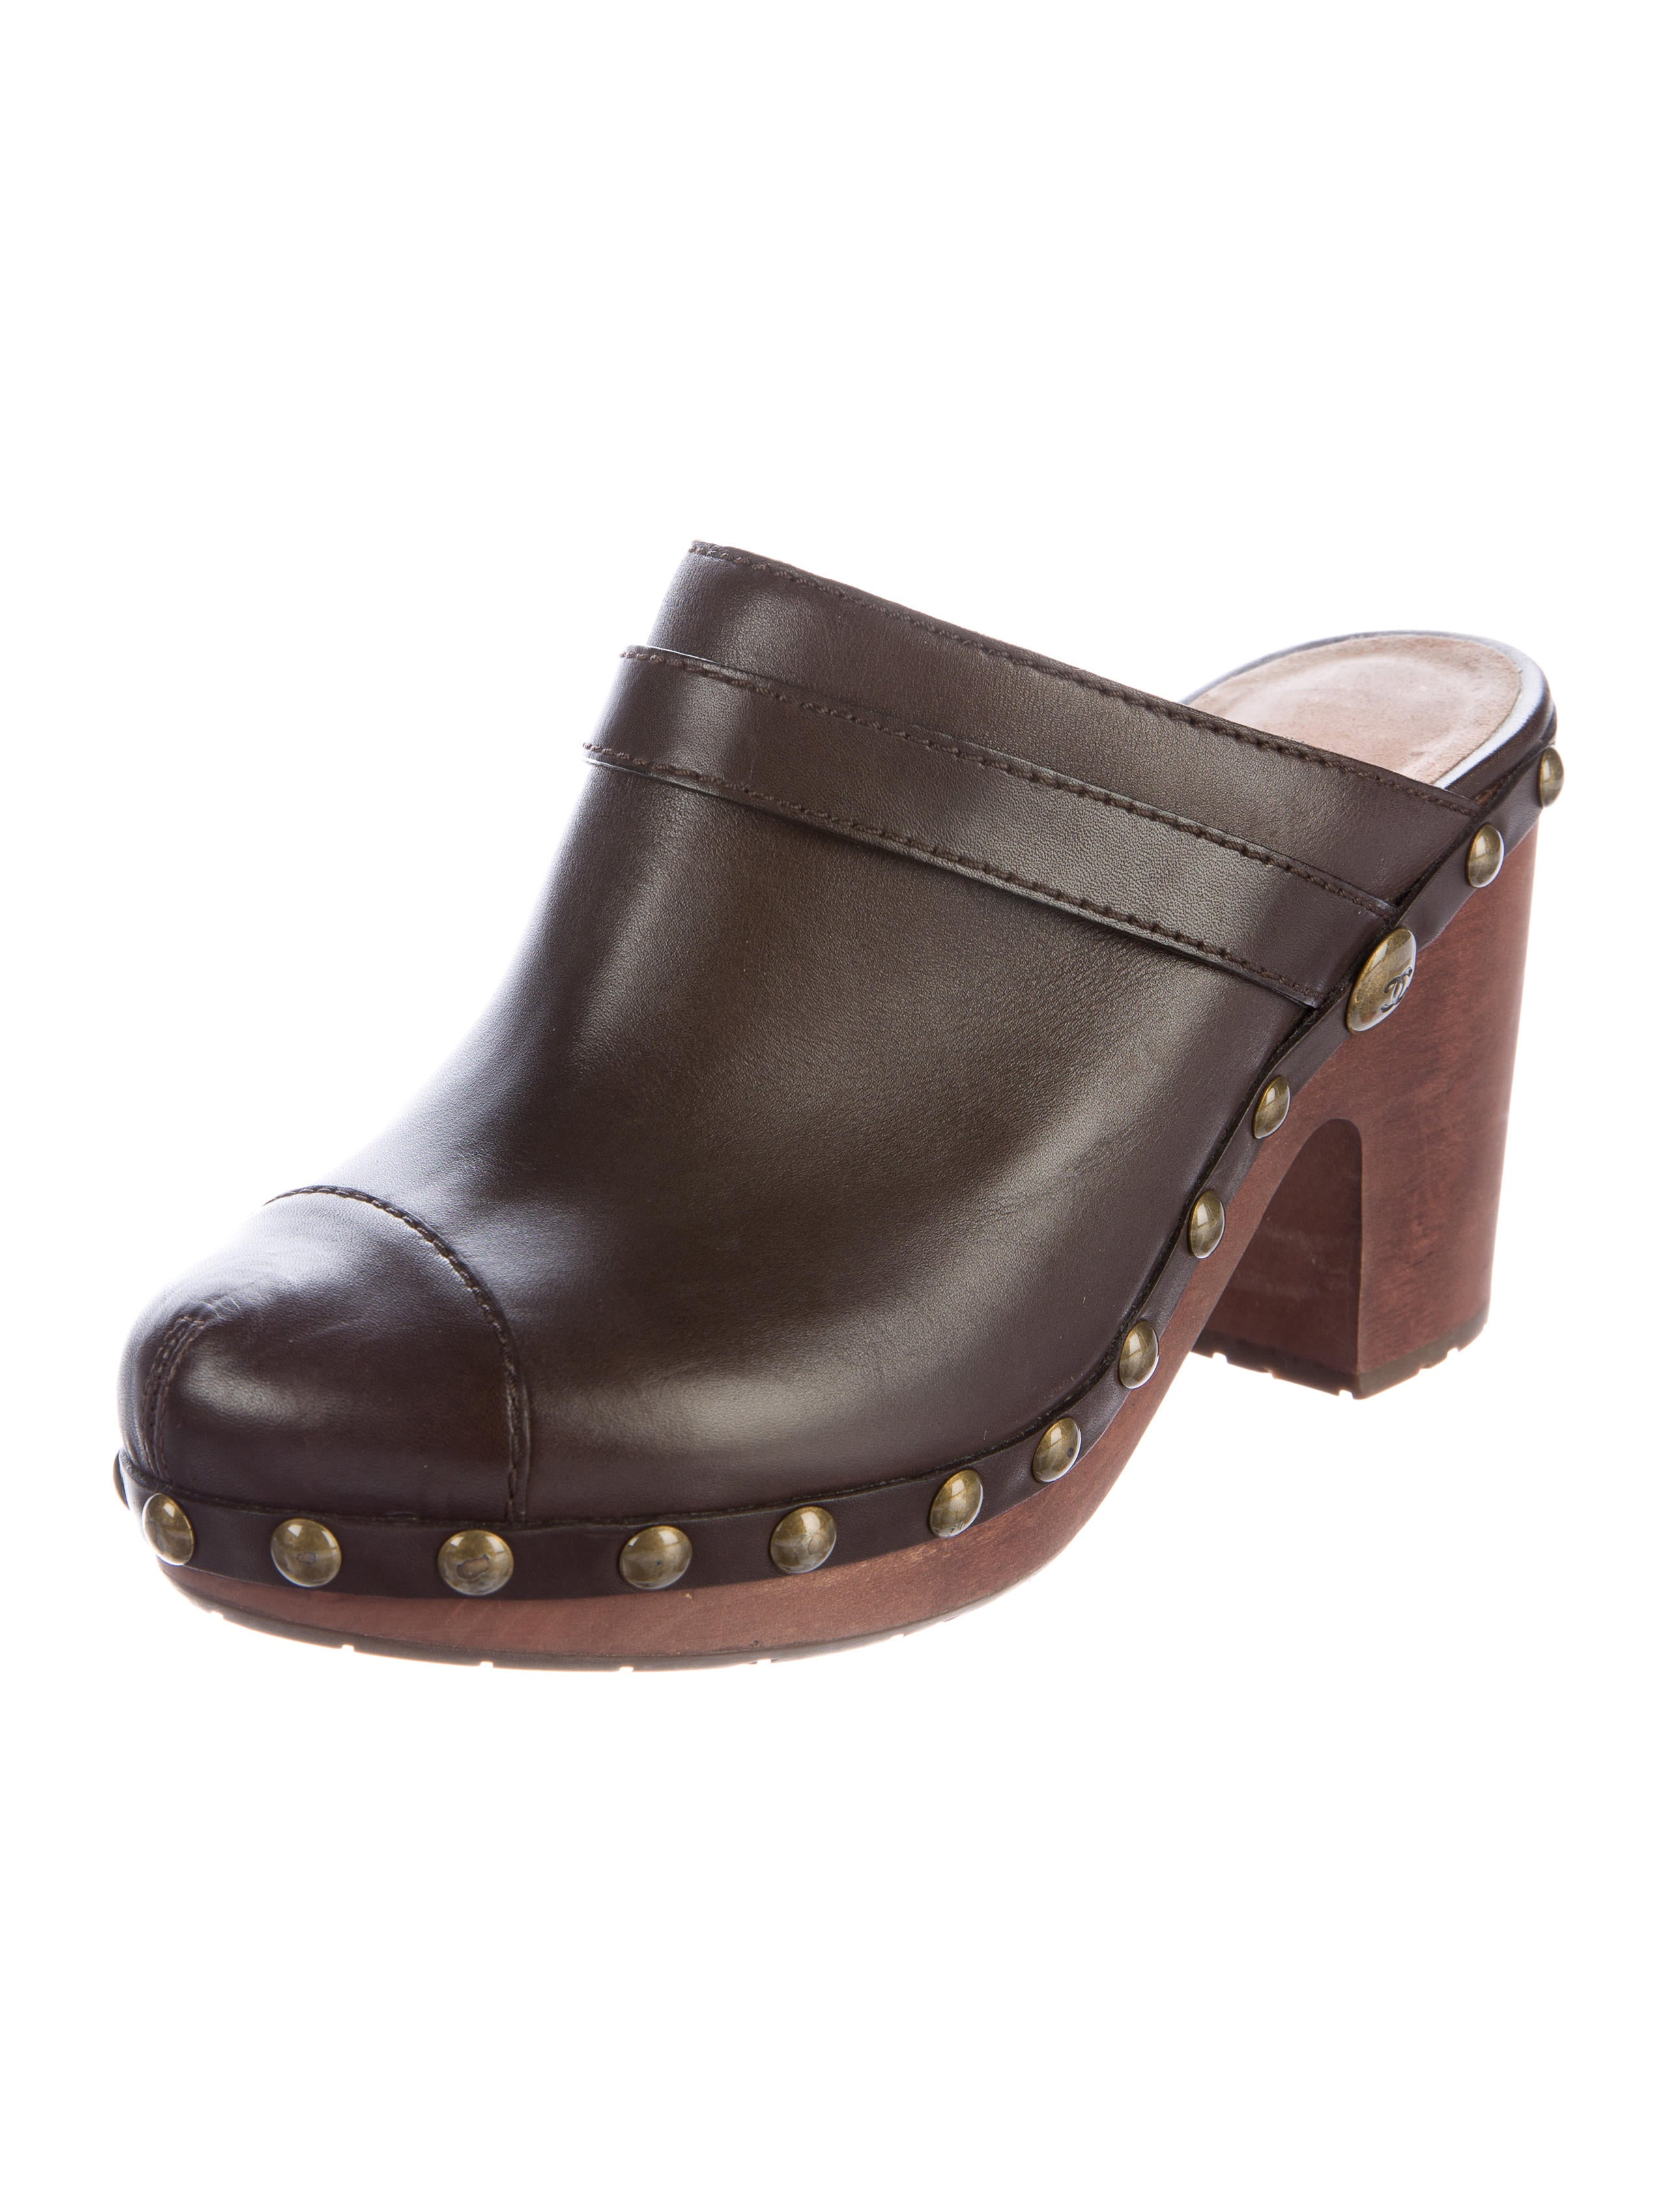 Leather Mules with FREE Shipping & Exchanges, and a % price guarantee. Choose from a huge selection of Leather Mules styles.